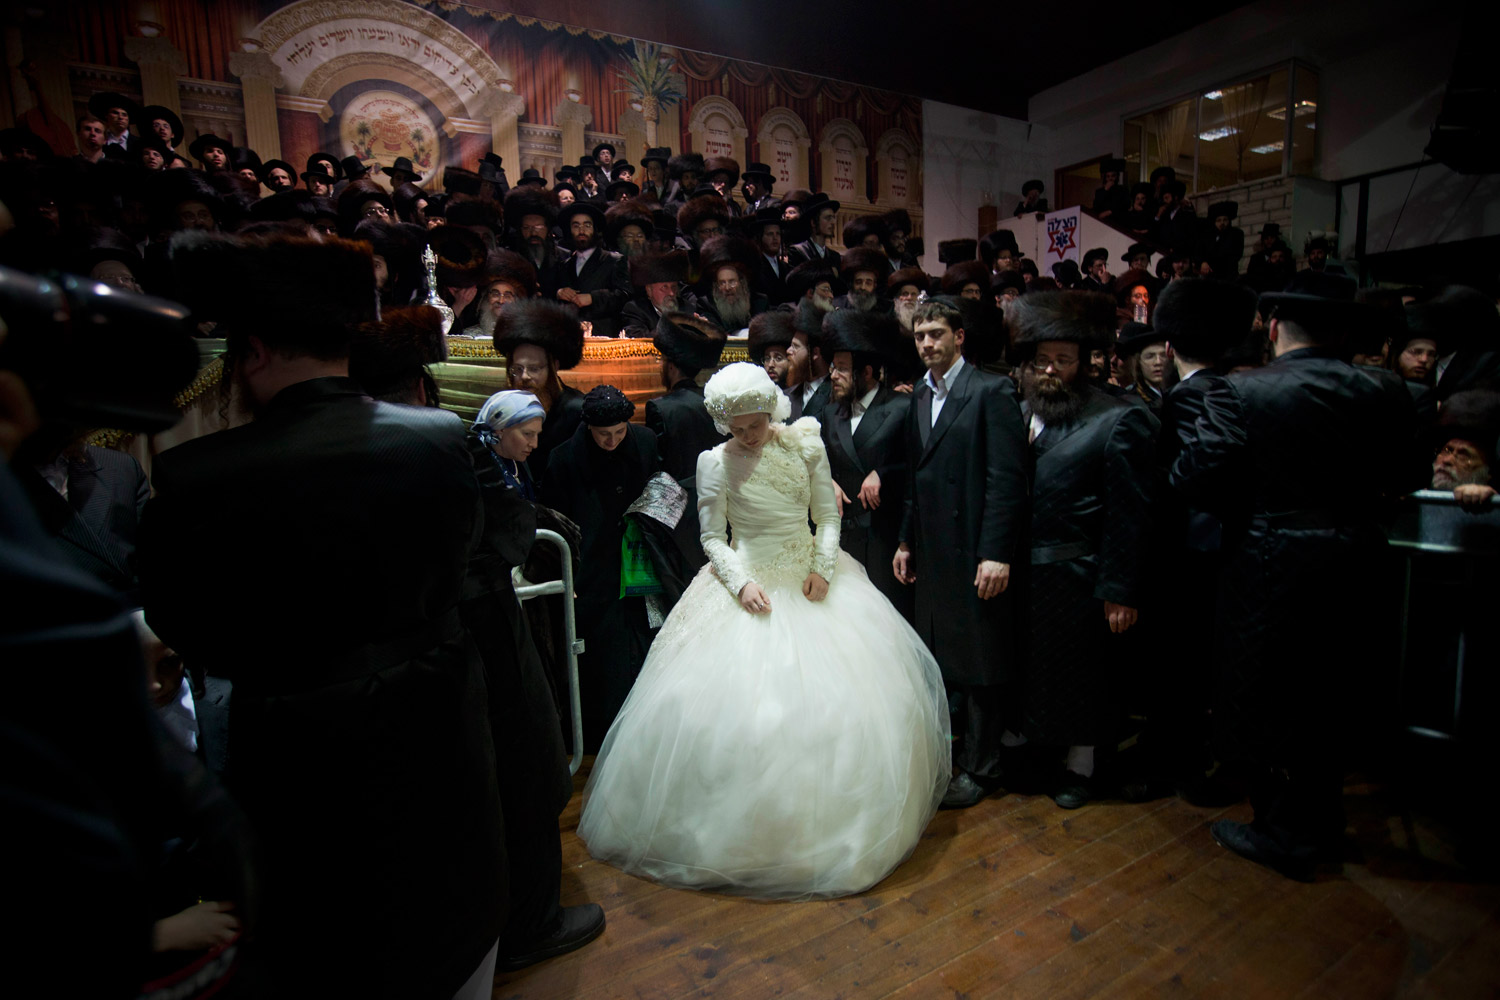 Feb. 15, 2012. Ultra-Orthodox Jewish bride Nechama Paarel Horowitz enters the men's section in a wedding hall during her traditional Jewish wedding with Chananya Yom Tov Lipa, the great-grandson of the Rabbi of the Wiznitz Hasidic followers, in the Israeli town of Petah Tikva near Tel Aviv. Nechama entered the men section to fulfill the Mitzvah tantz, in which family members and honored rabbis are invited to dance in front of the bride.